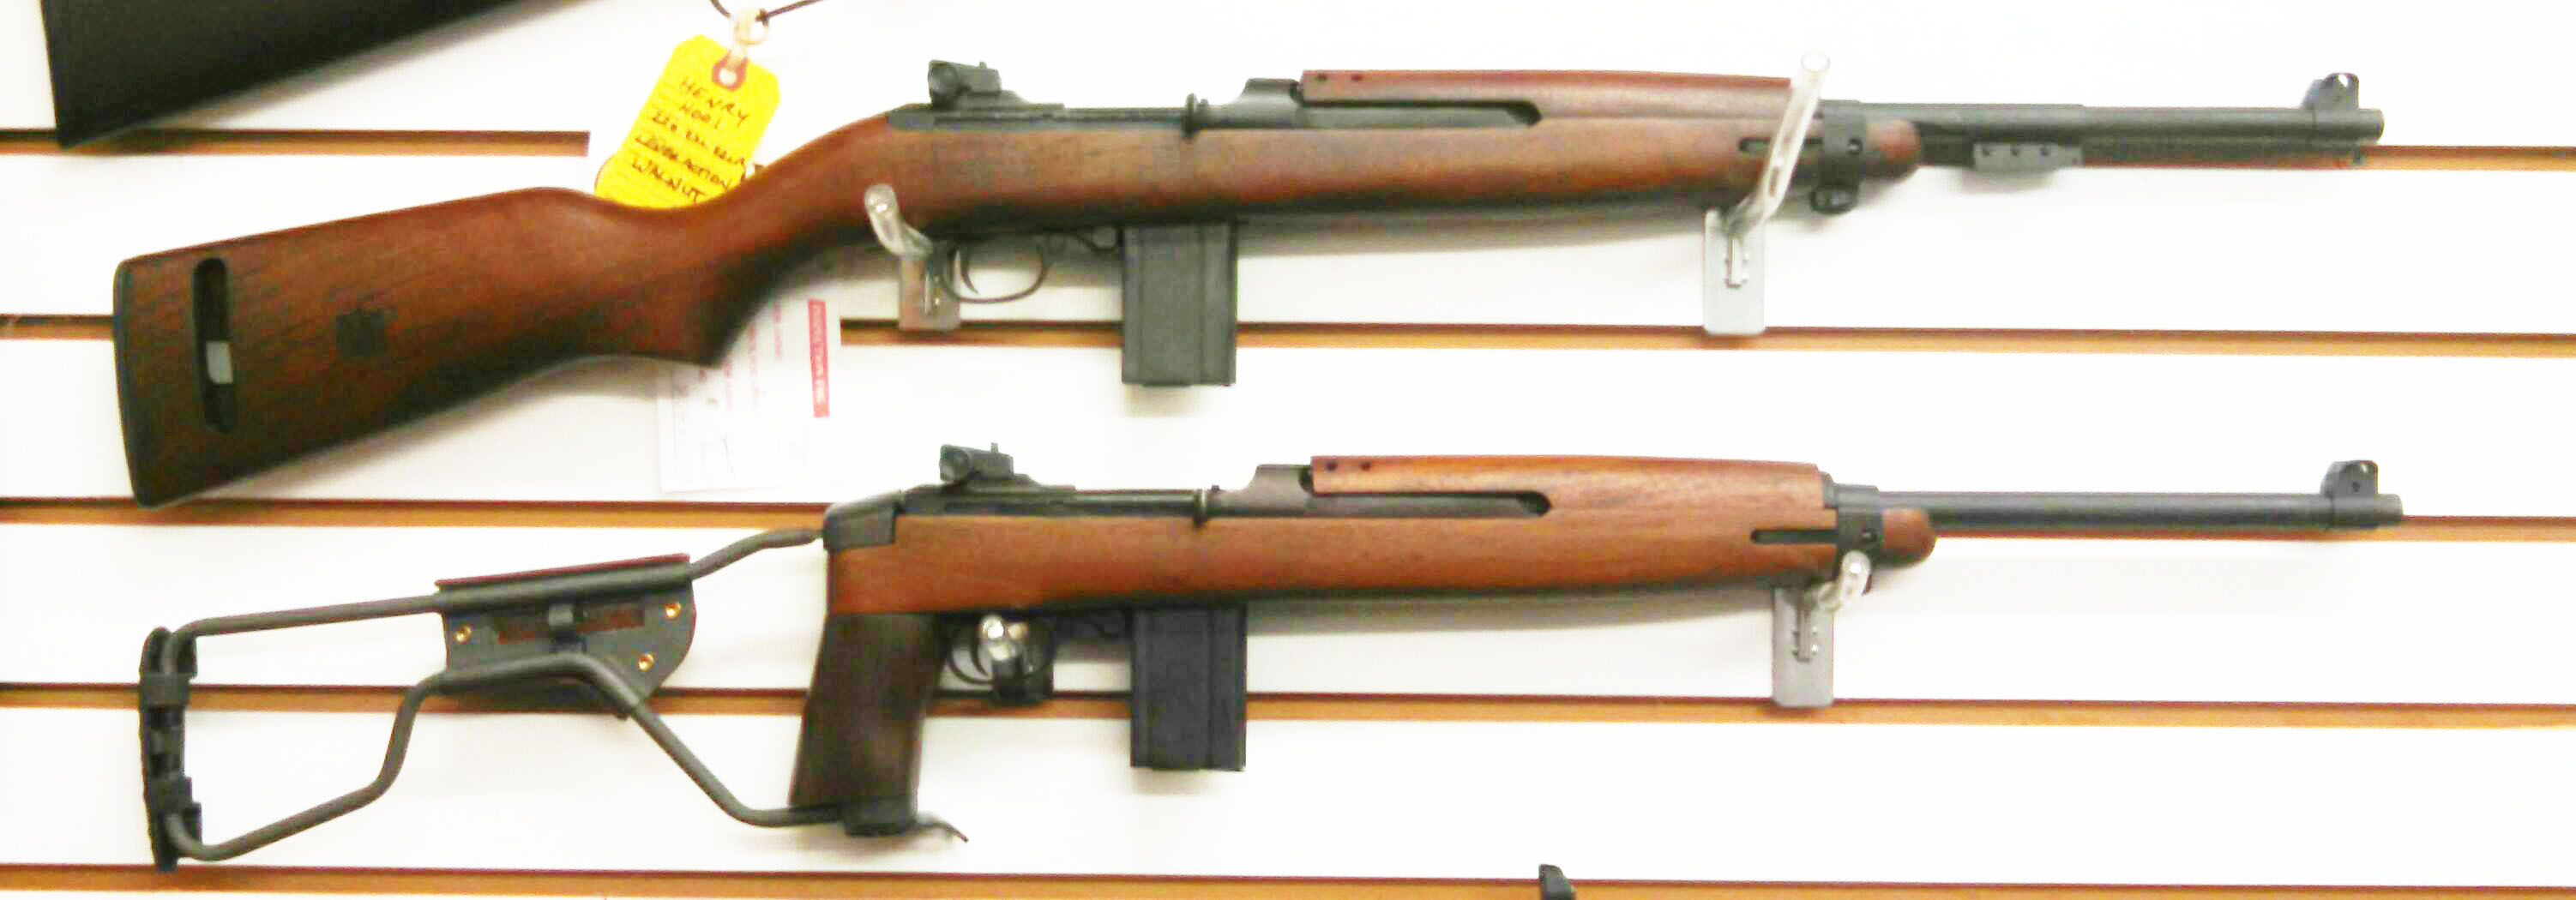 IN STOCK- INLAND M1 1945 carbines feature many of the same characteristics of the original Inland Carbines and are manufactured in the USA! The M1 carbine is modeled after the last production model that Inland manufactured in 1945 and features a type 3 bayonet lug / barrel band, adjustable rear sights, push button safety, round bolt,